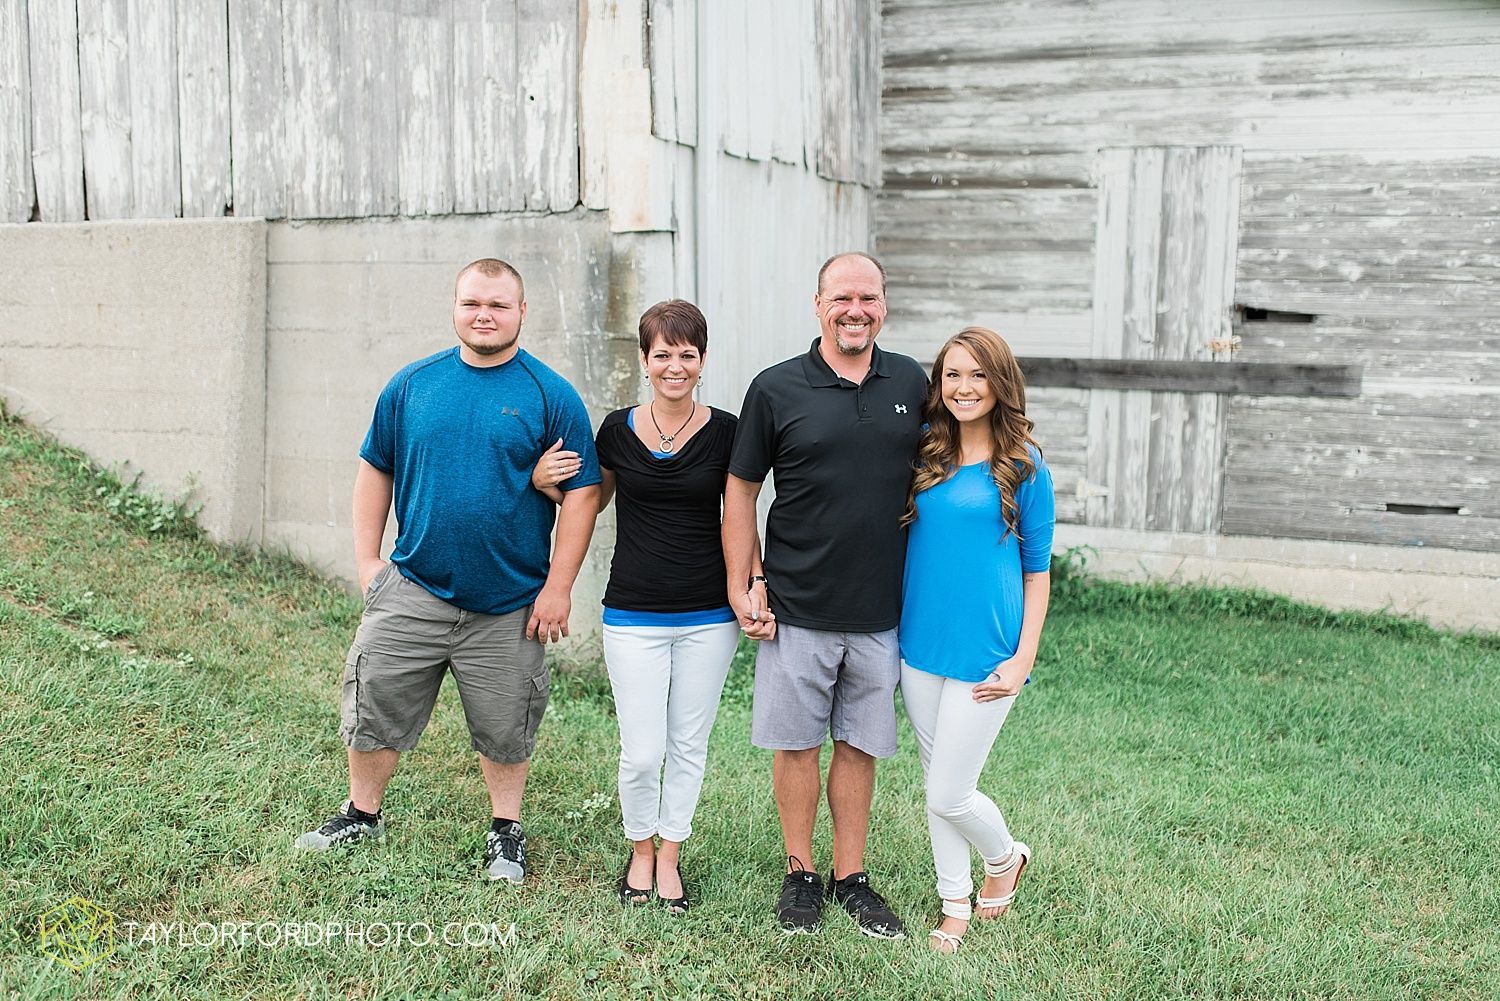 fort_wayne_indiana_family_photographer_taylor_ford_bryan_ohio_family_photographer_0354.jpg